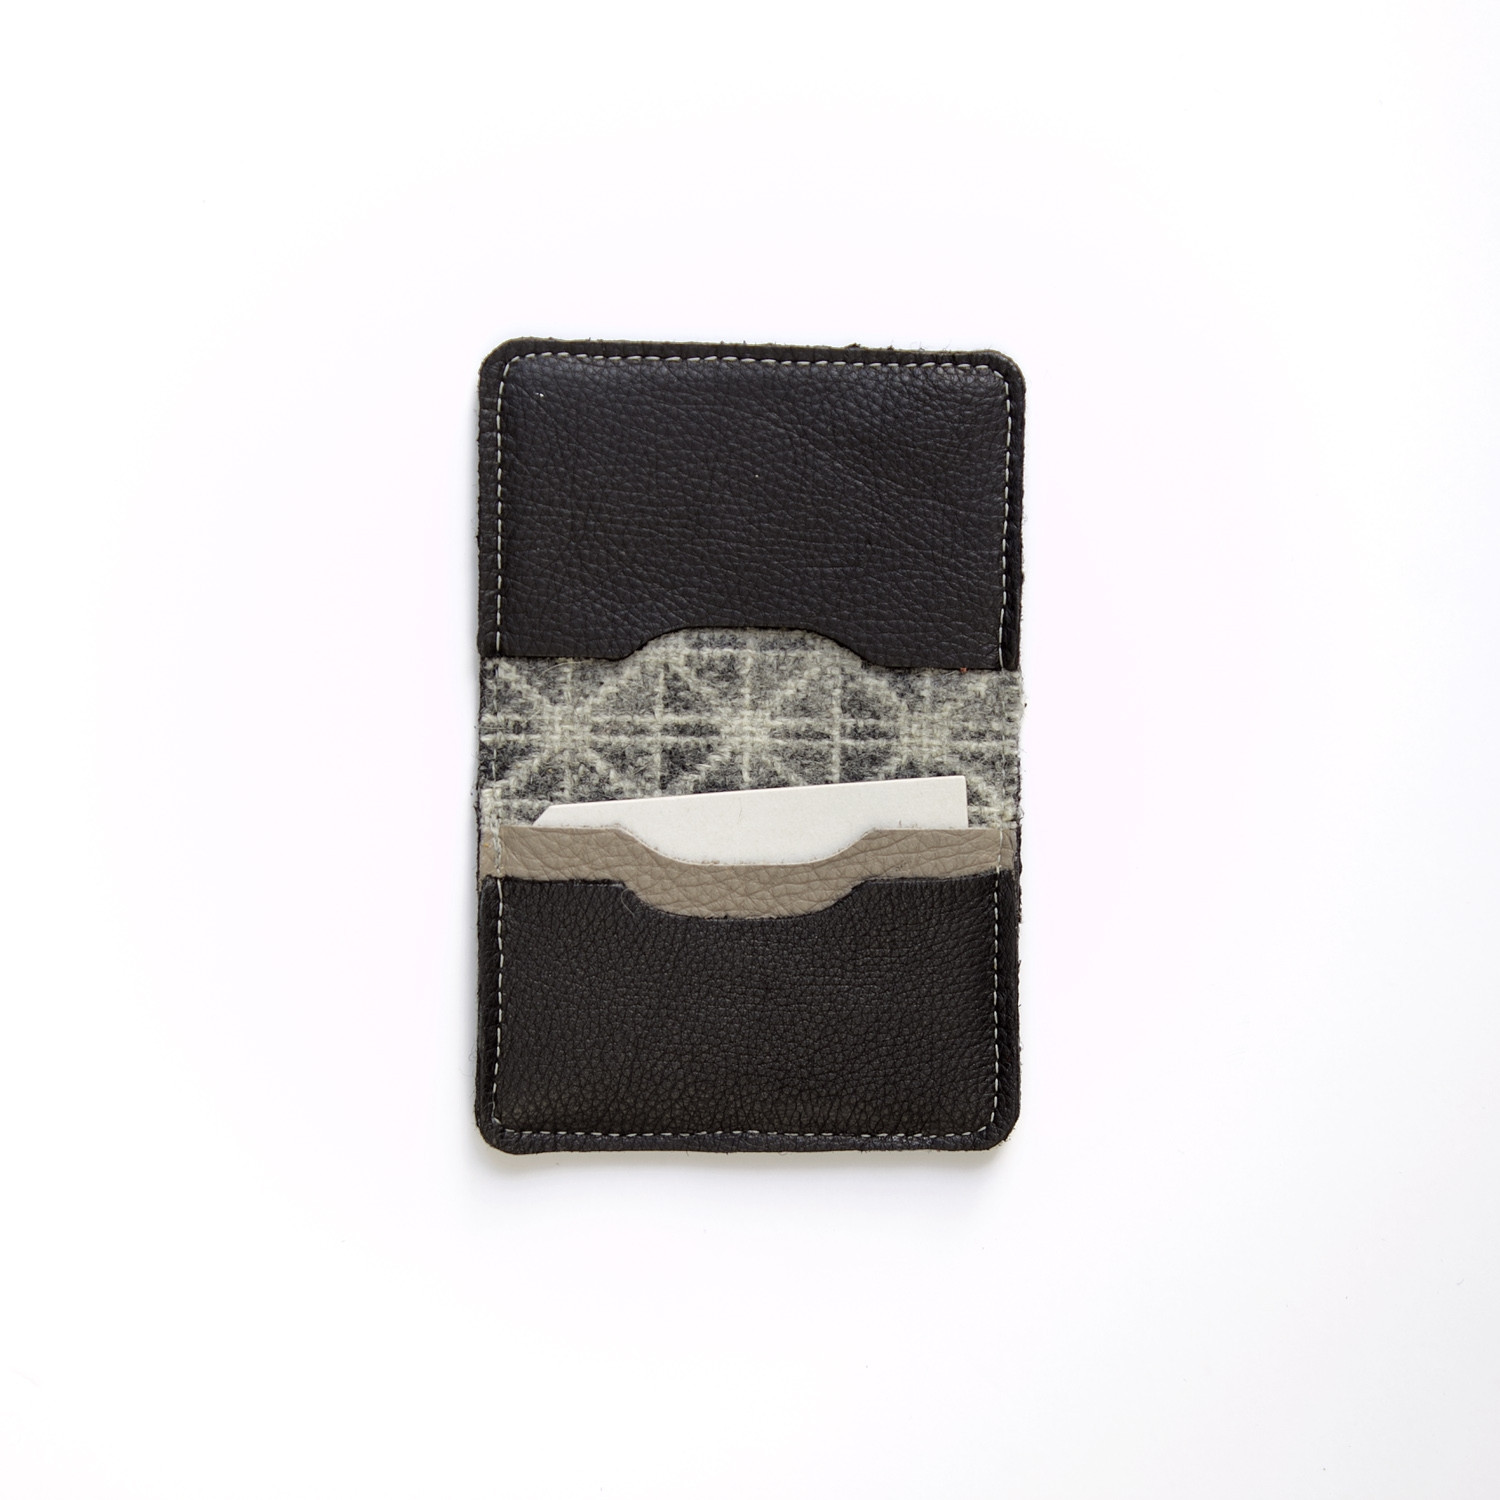 Nexus ash card wallet - open